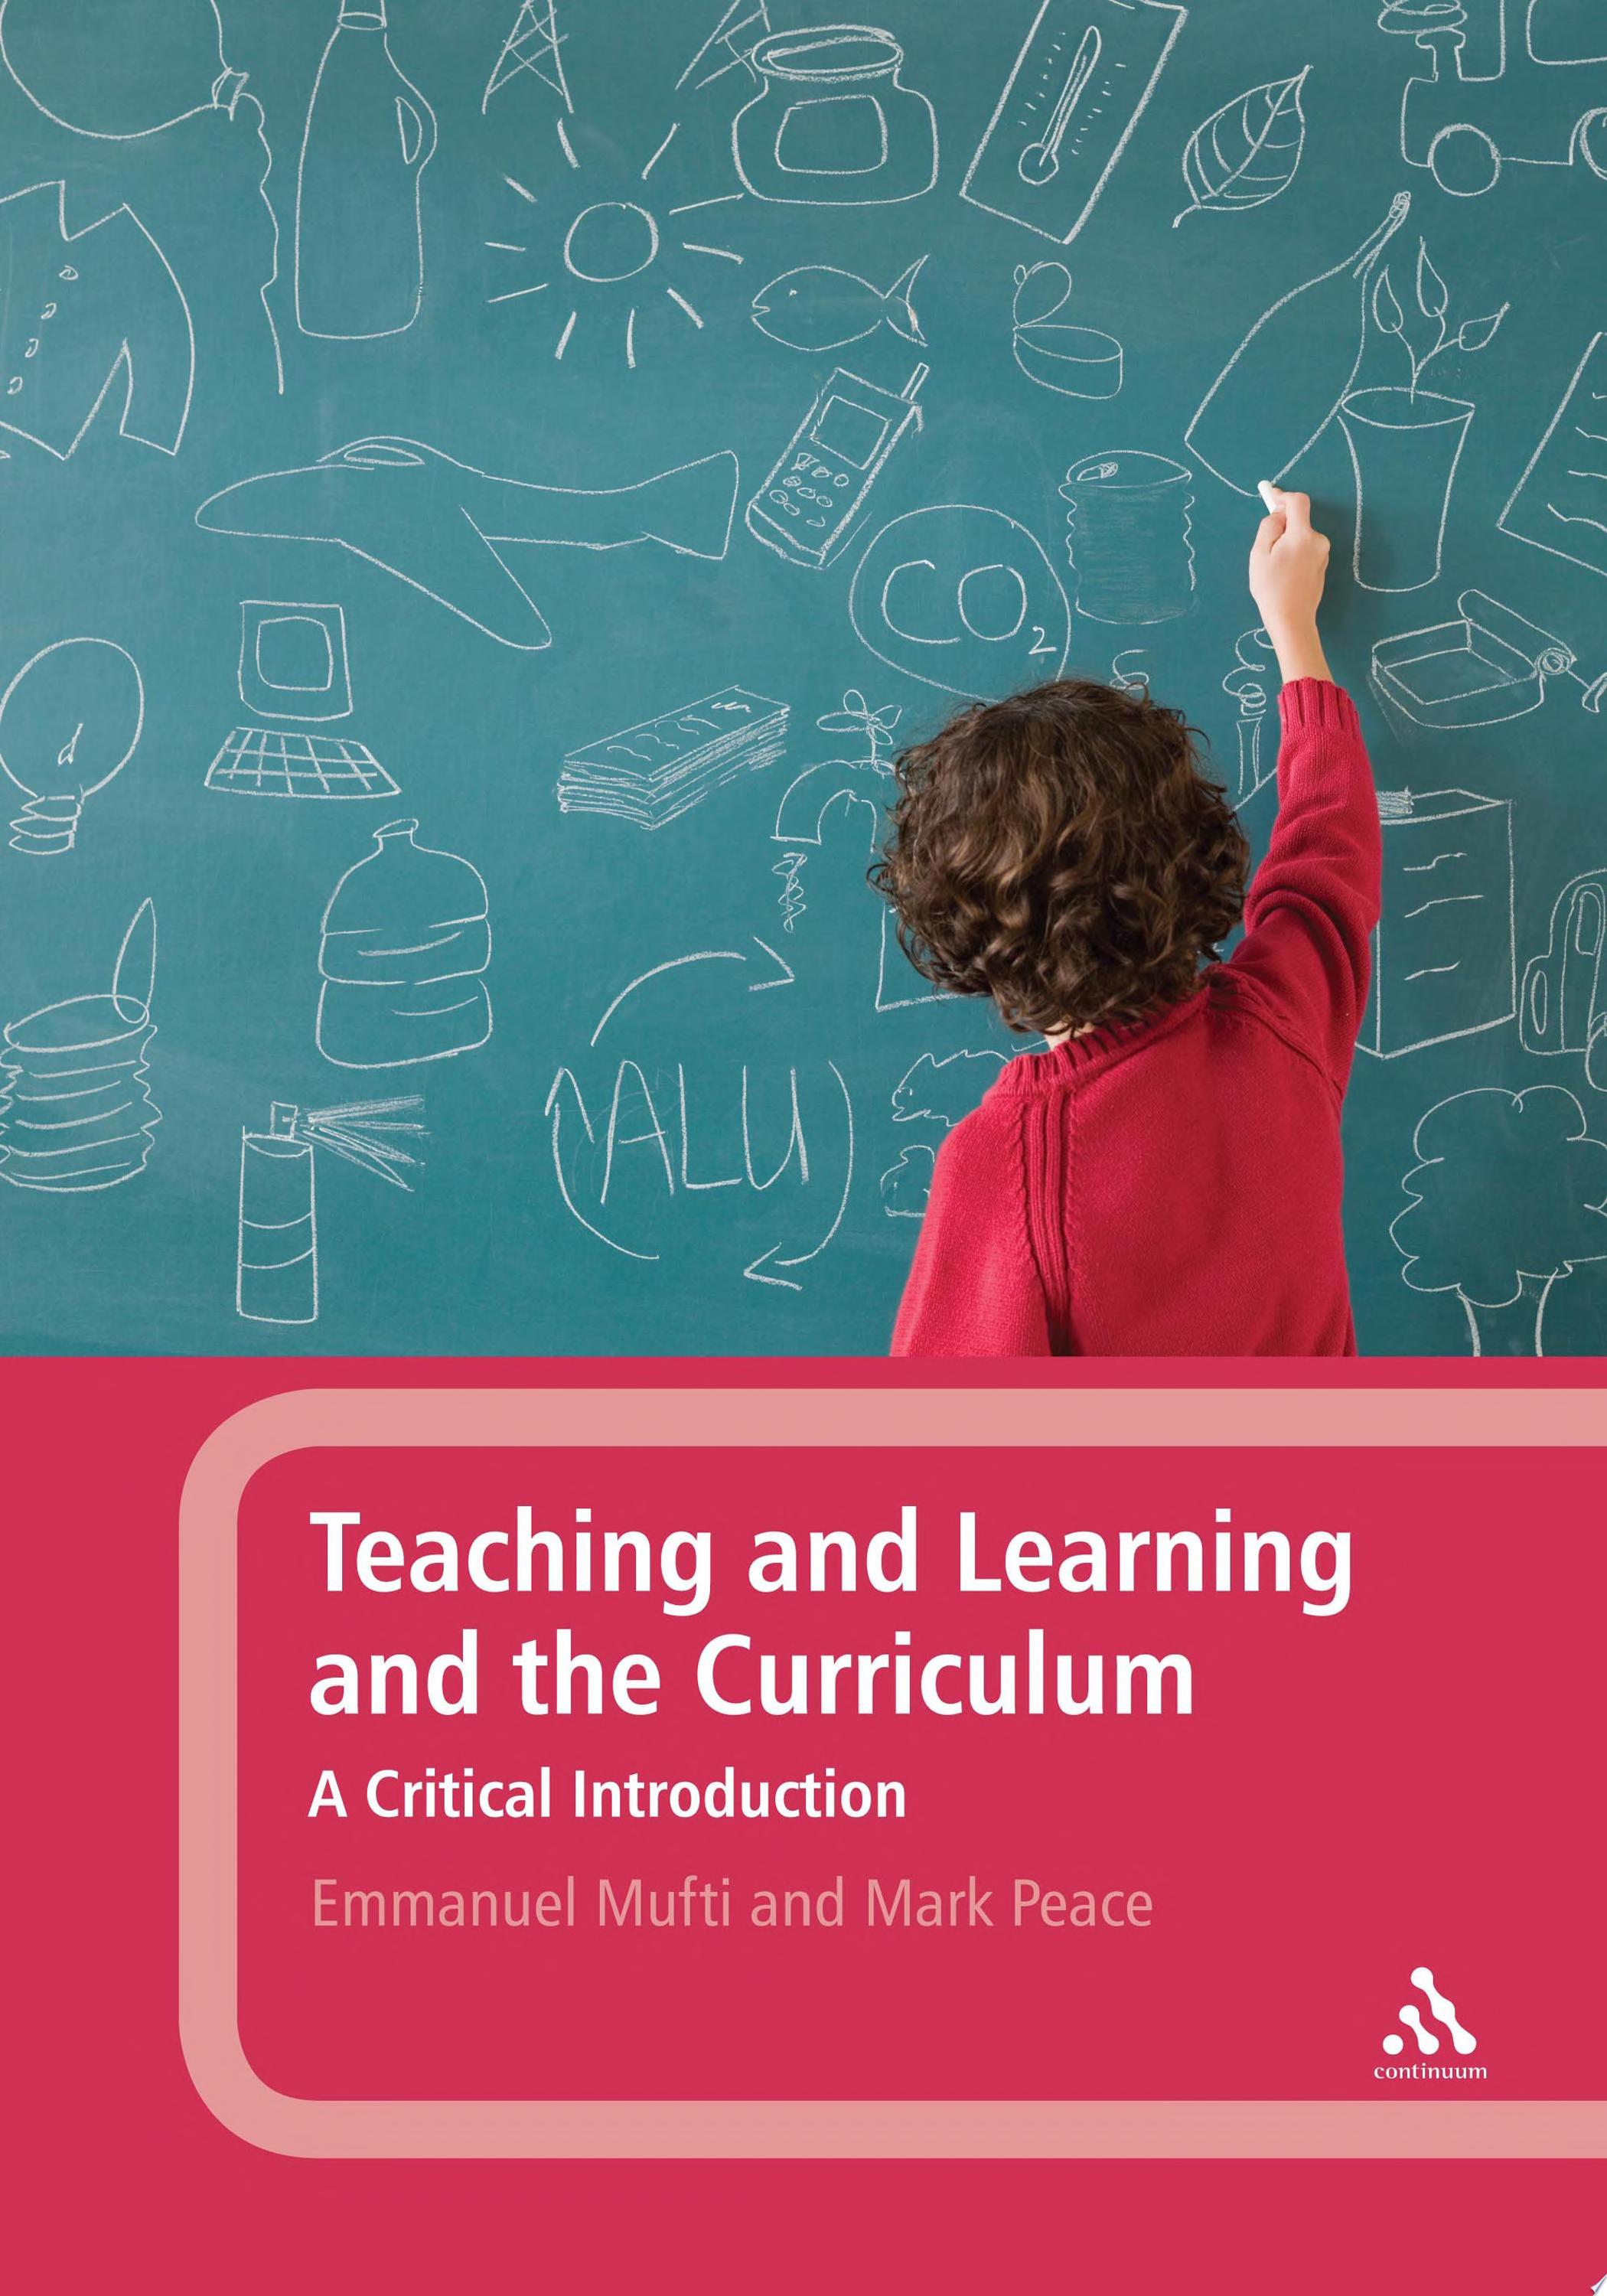 Teaching and Learning and the Curriculum